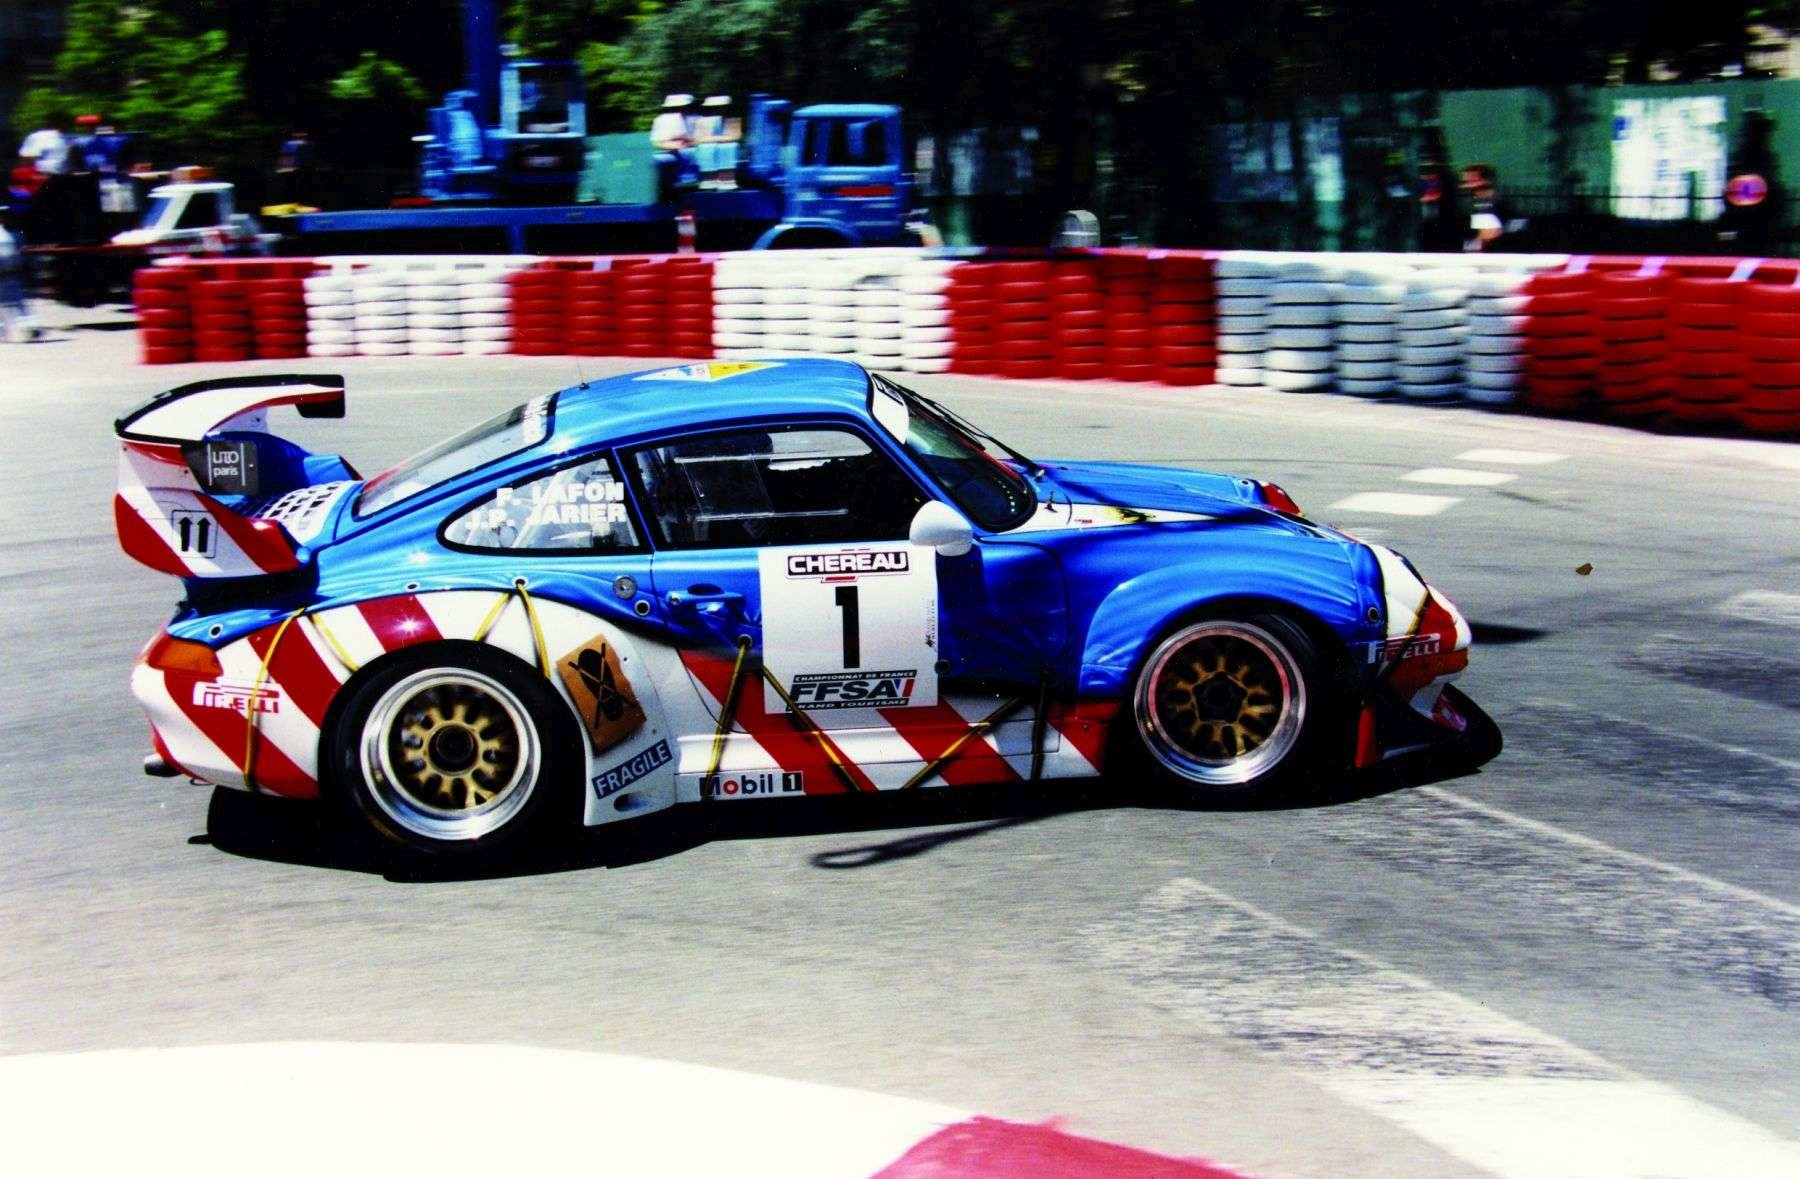 1998 PORSCHE 993 EVO 2 French FFSA CHAMPION in 1999 For Sale (picture 5 of 6)